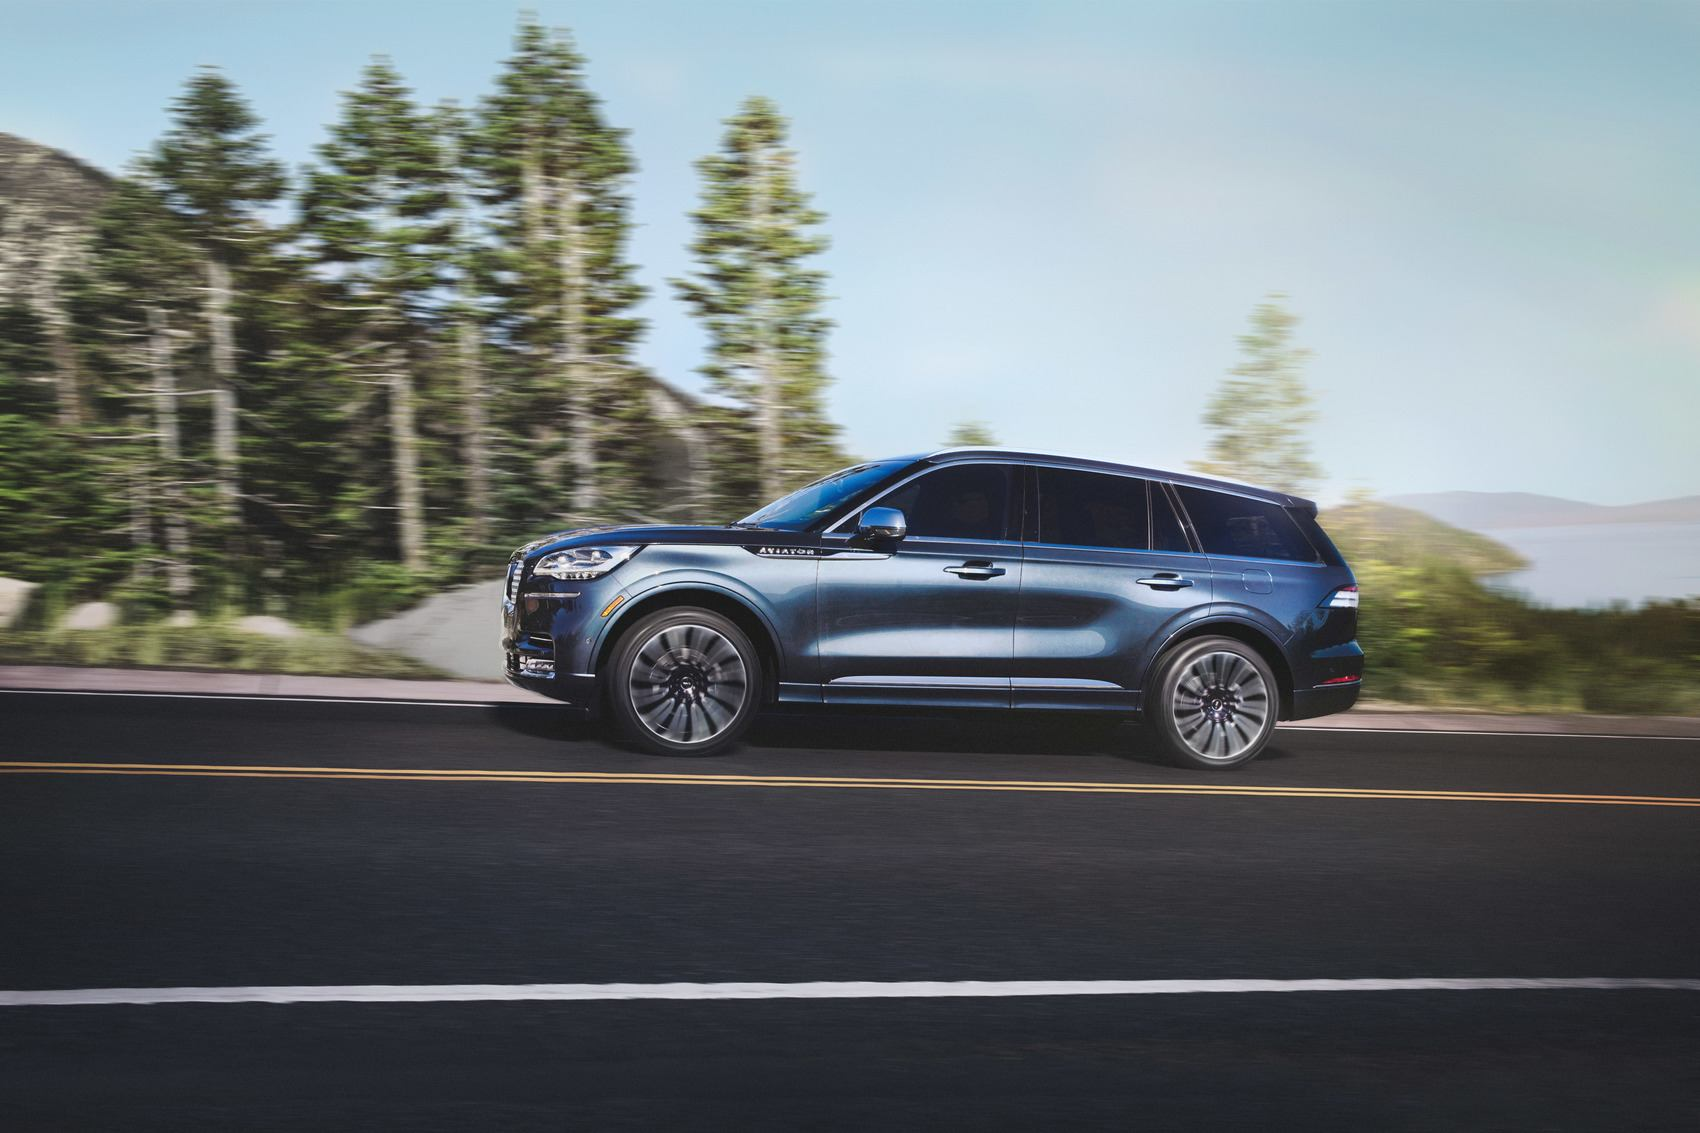 Lincoln scores high in reliability ratings from J.D. Power, but even reliable cars are prone to expensive breakdowns over time. Lincoln's warranty is better than average among luxury brands, but having additional coverage from a third-party provider may be a good idea.